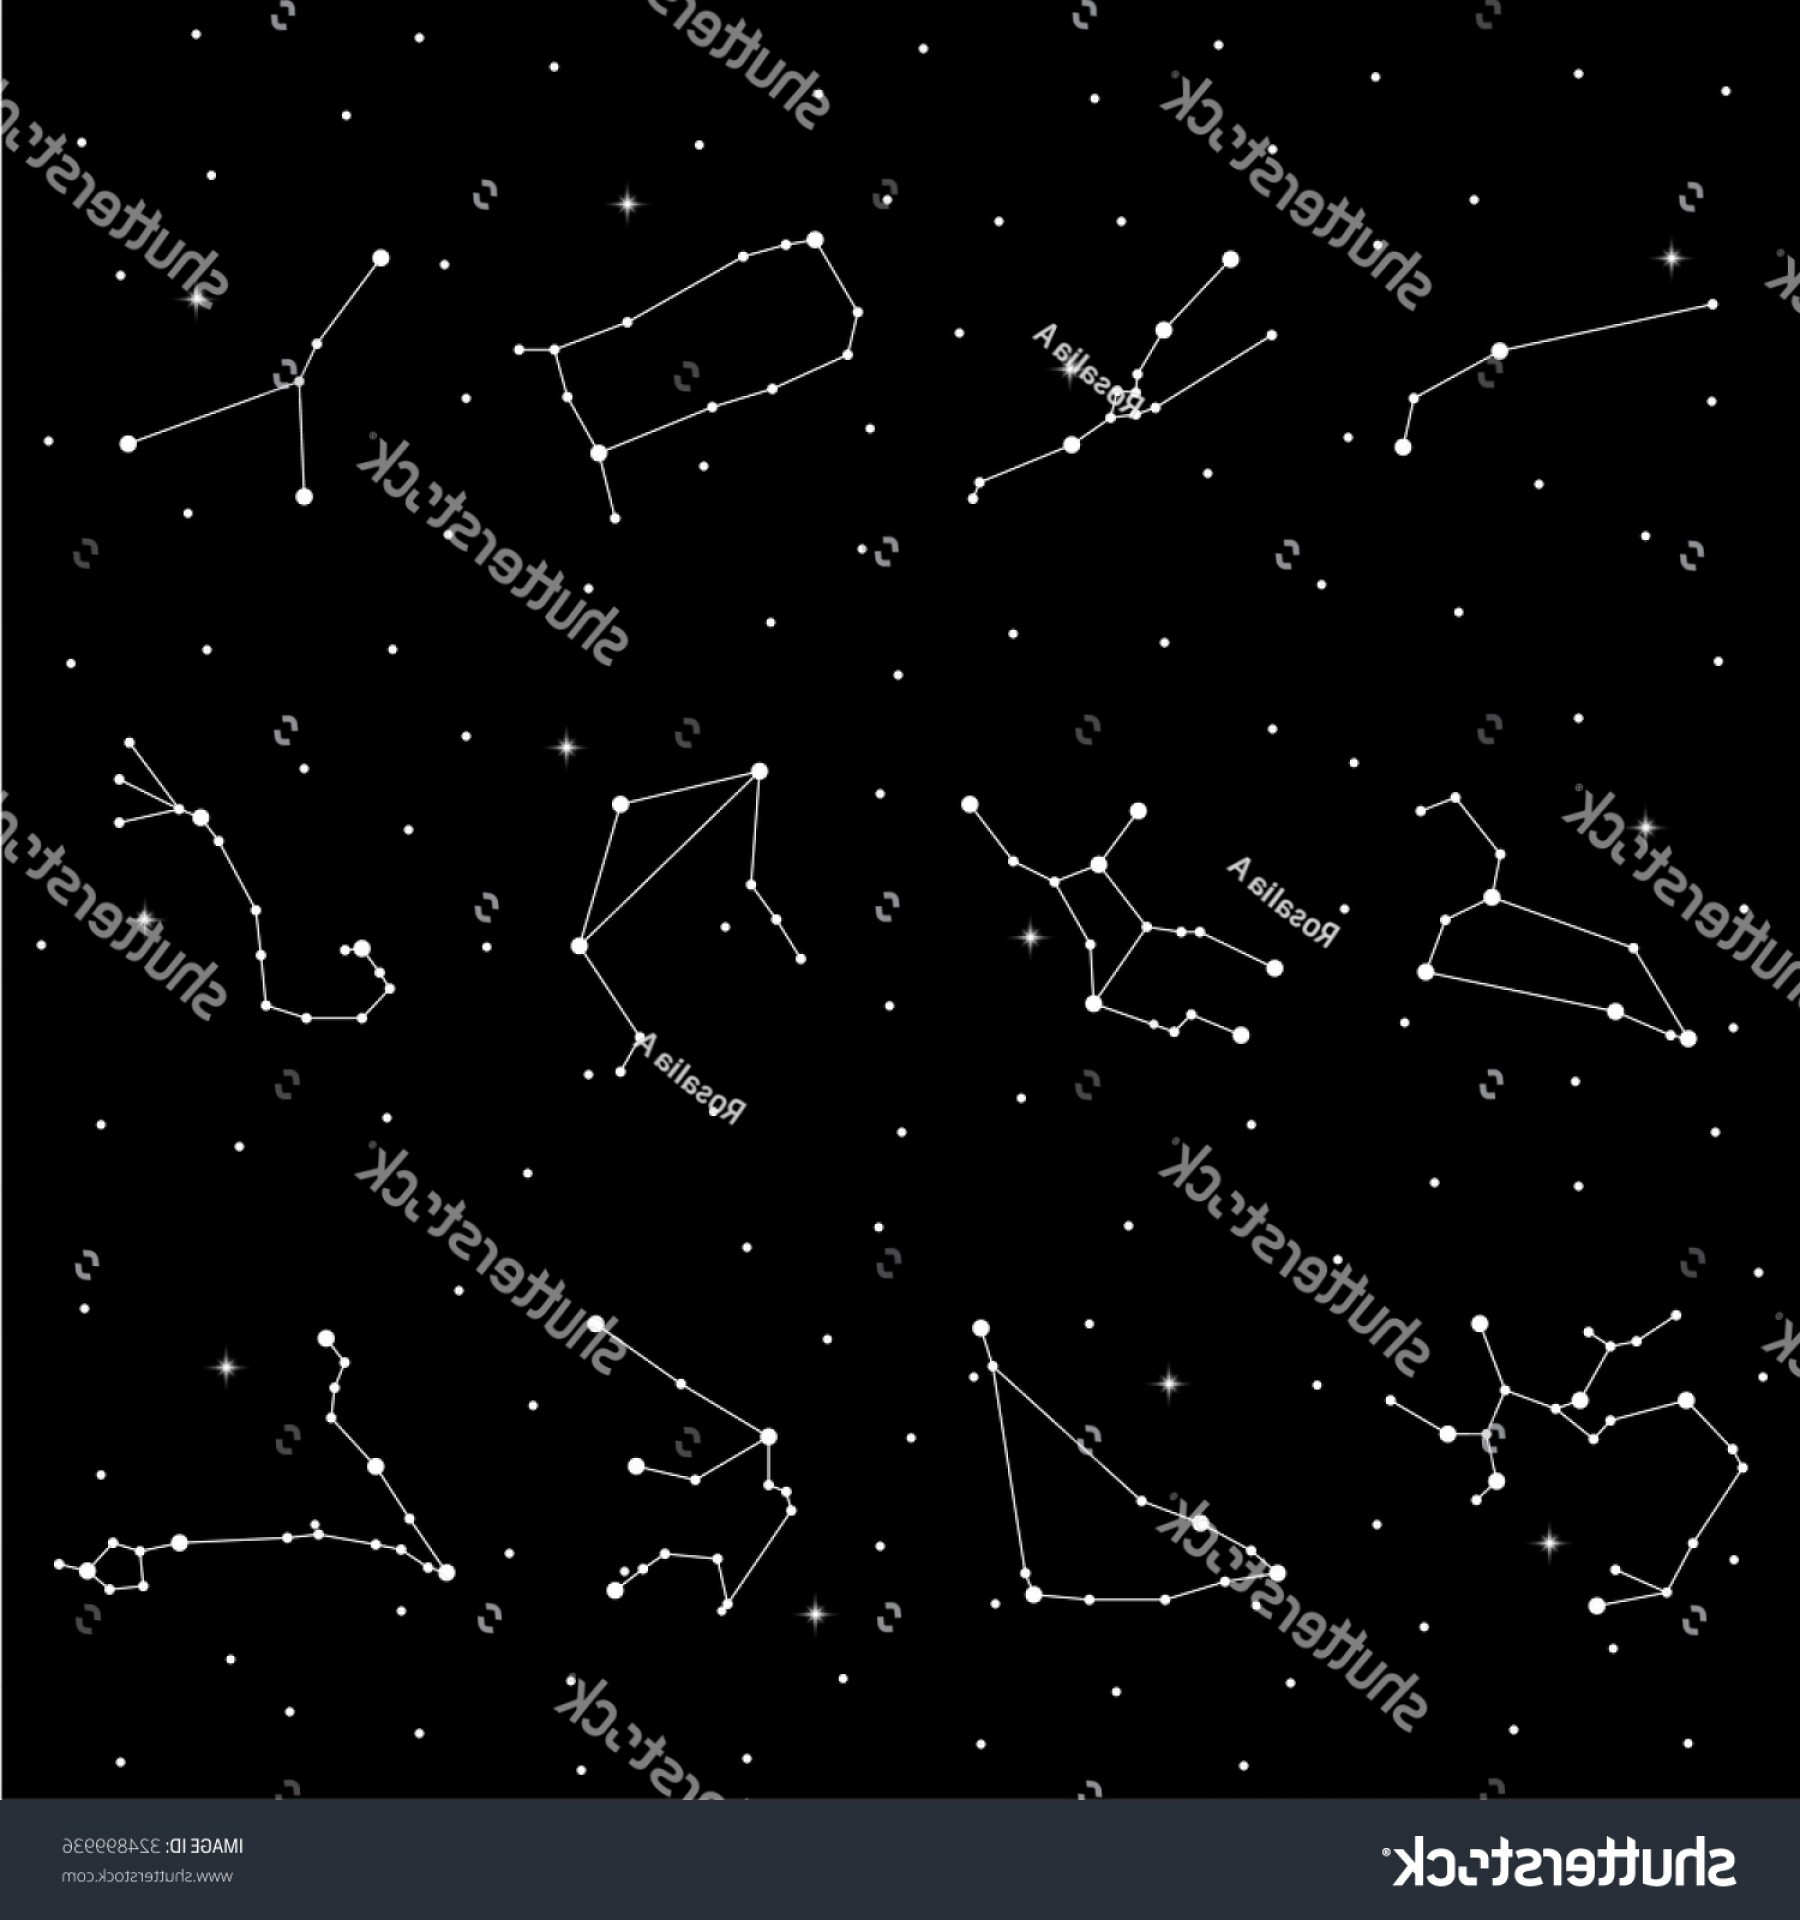 October Zodiac Constellation Vector: Shutterstock Zodiac Signs Vector Illustration